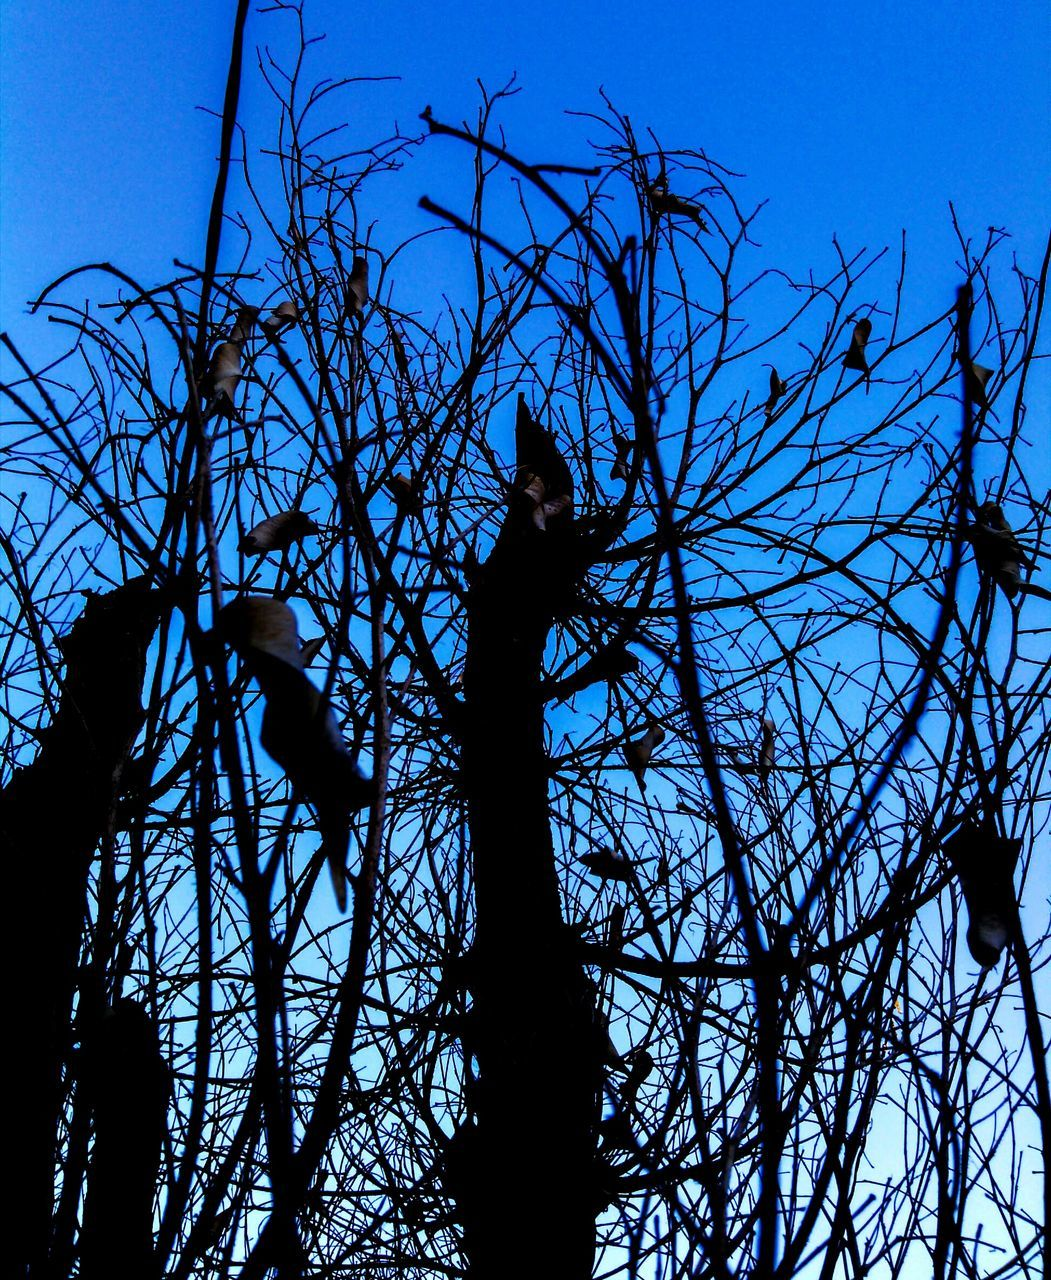 silhouette, bare tree, tree, low angle view, branch, sky, clear sky, outdoors, blue, day, statue, standing, real people, sculpture, one person, nature, architecture, beauty in nature, people